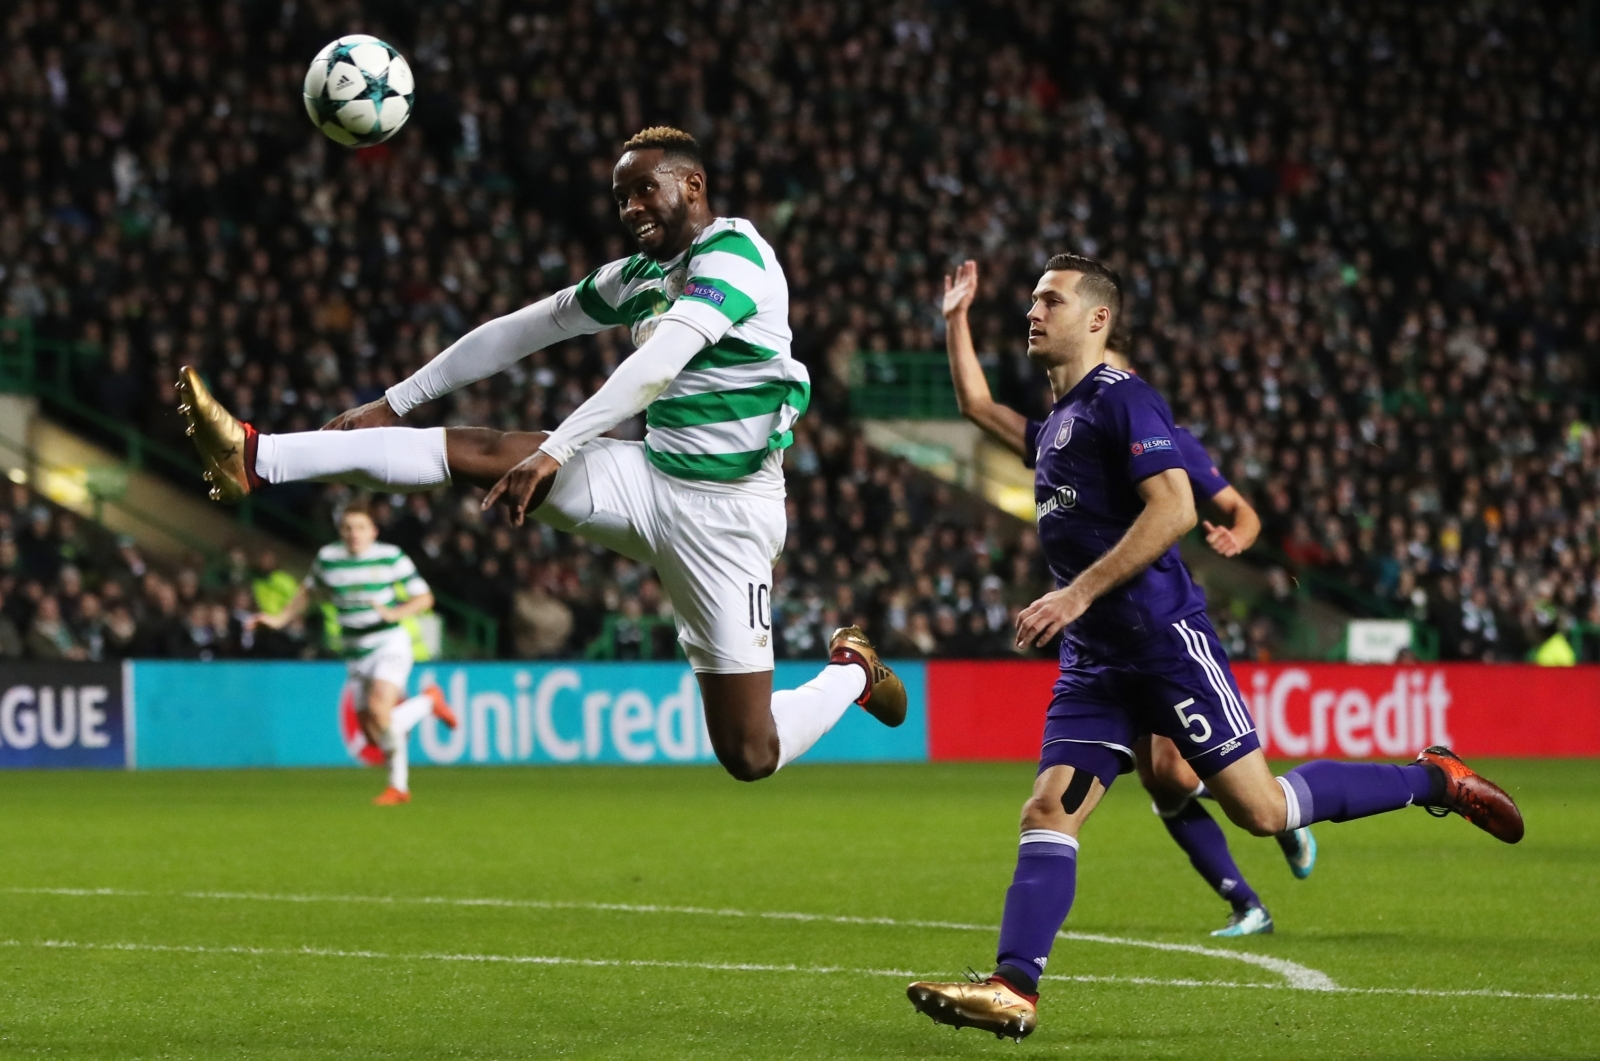 'Plans can change' - Celtic striker Dembele drops January exit hint